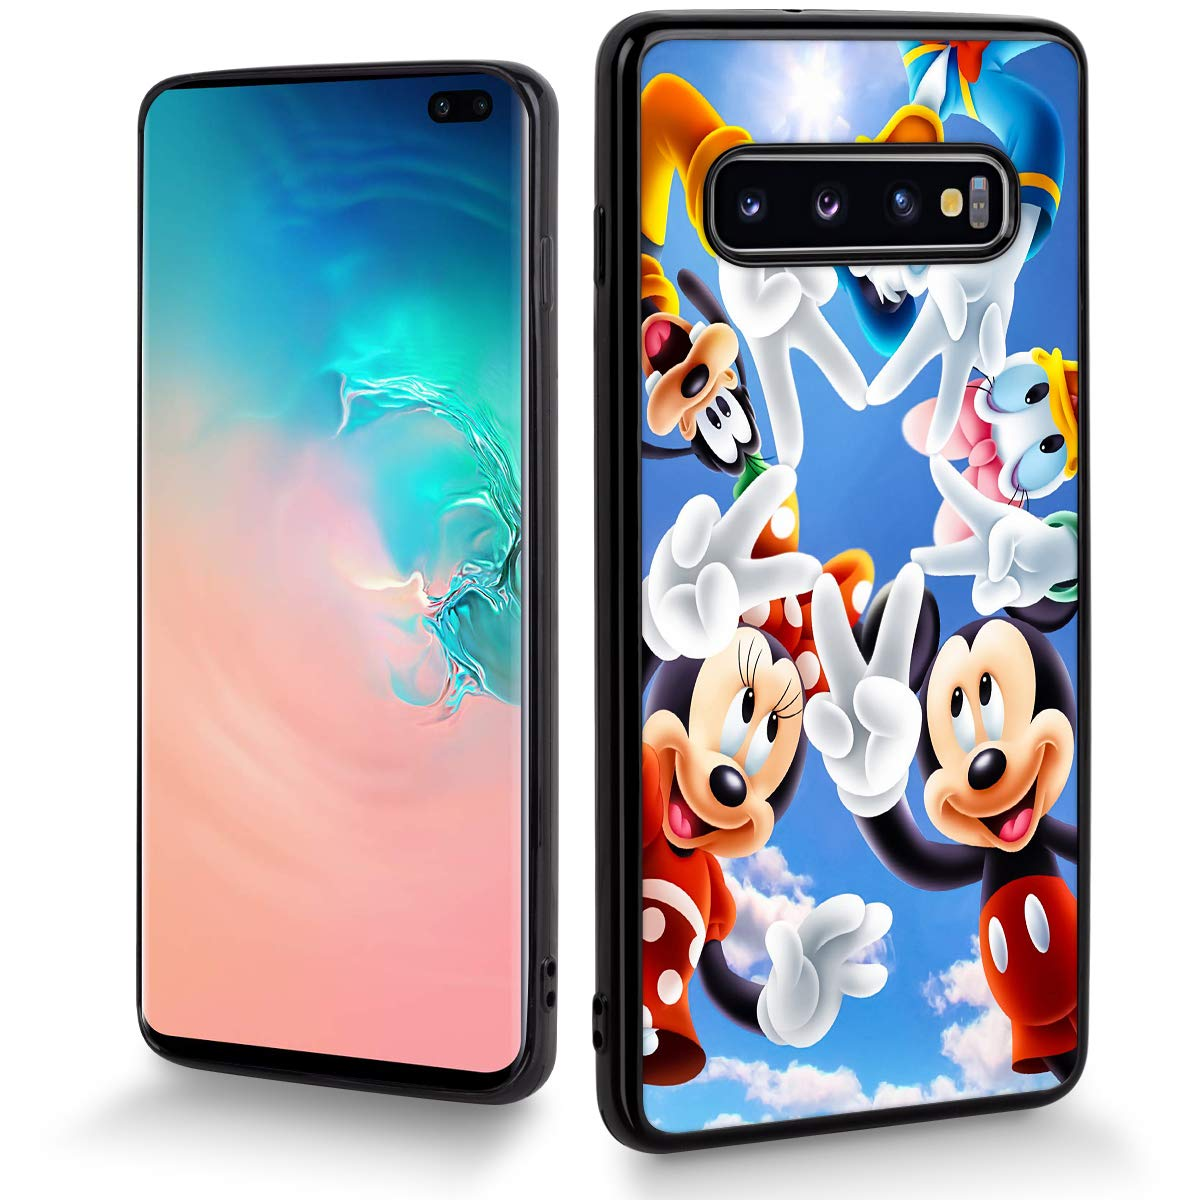 a97db5cec8 Amazon.com: DISNEY COLLECTION Cartoon Cute Phone Case Fit for Samsung  Galaxy S10+(6.4 inch) Mickey with Friends Bumper Shockproof Protective  Black Cover: ...